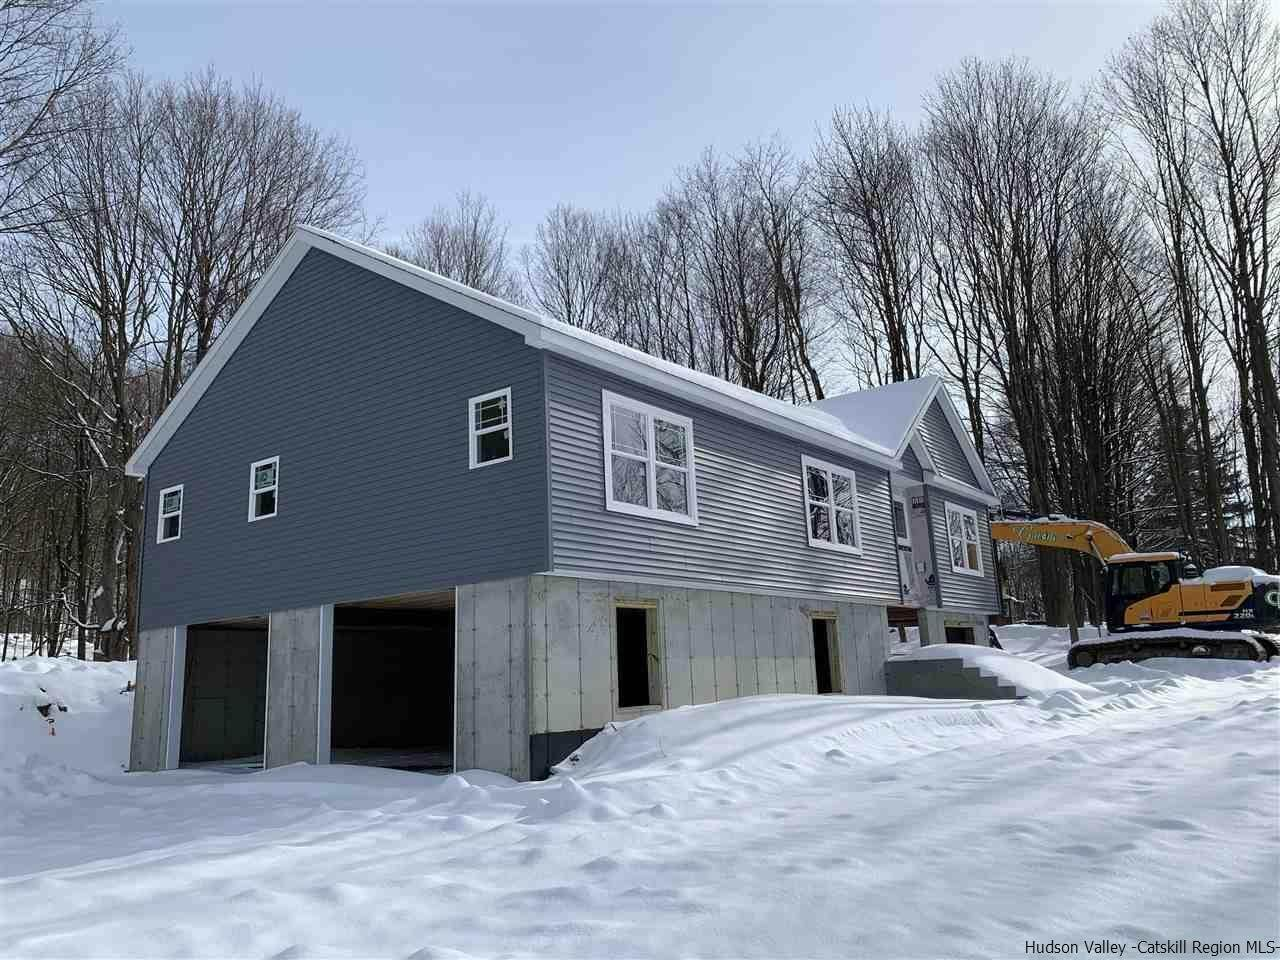 Single Family Homes for Sale at Lot 5 Calico Way Plattekill, New York 12568 United States